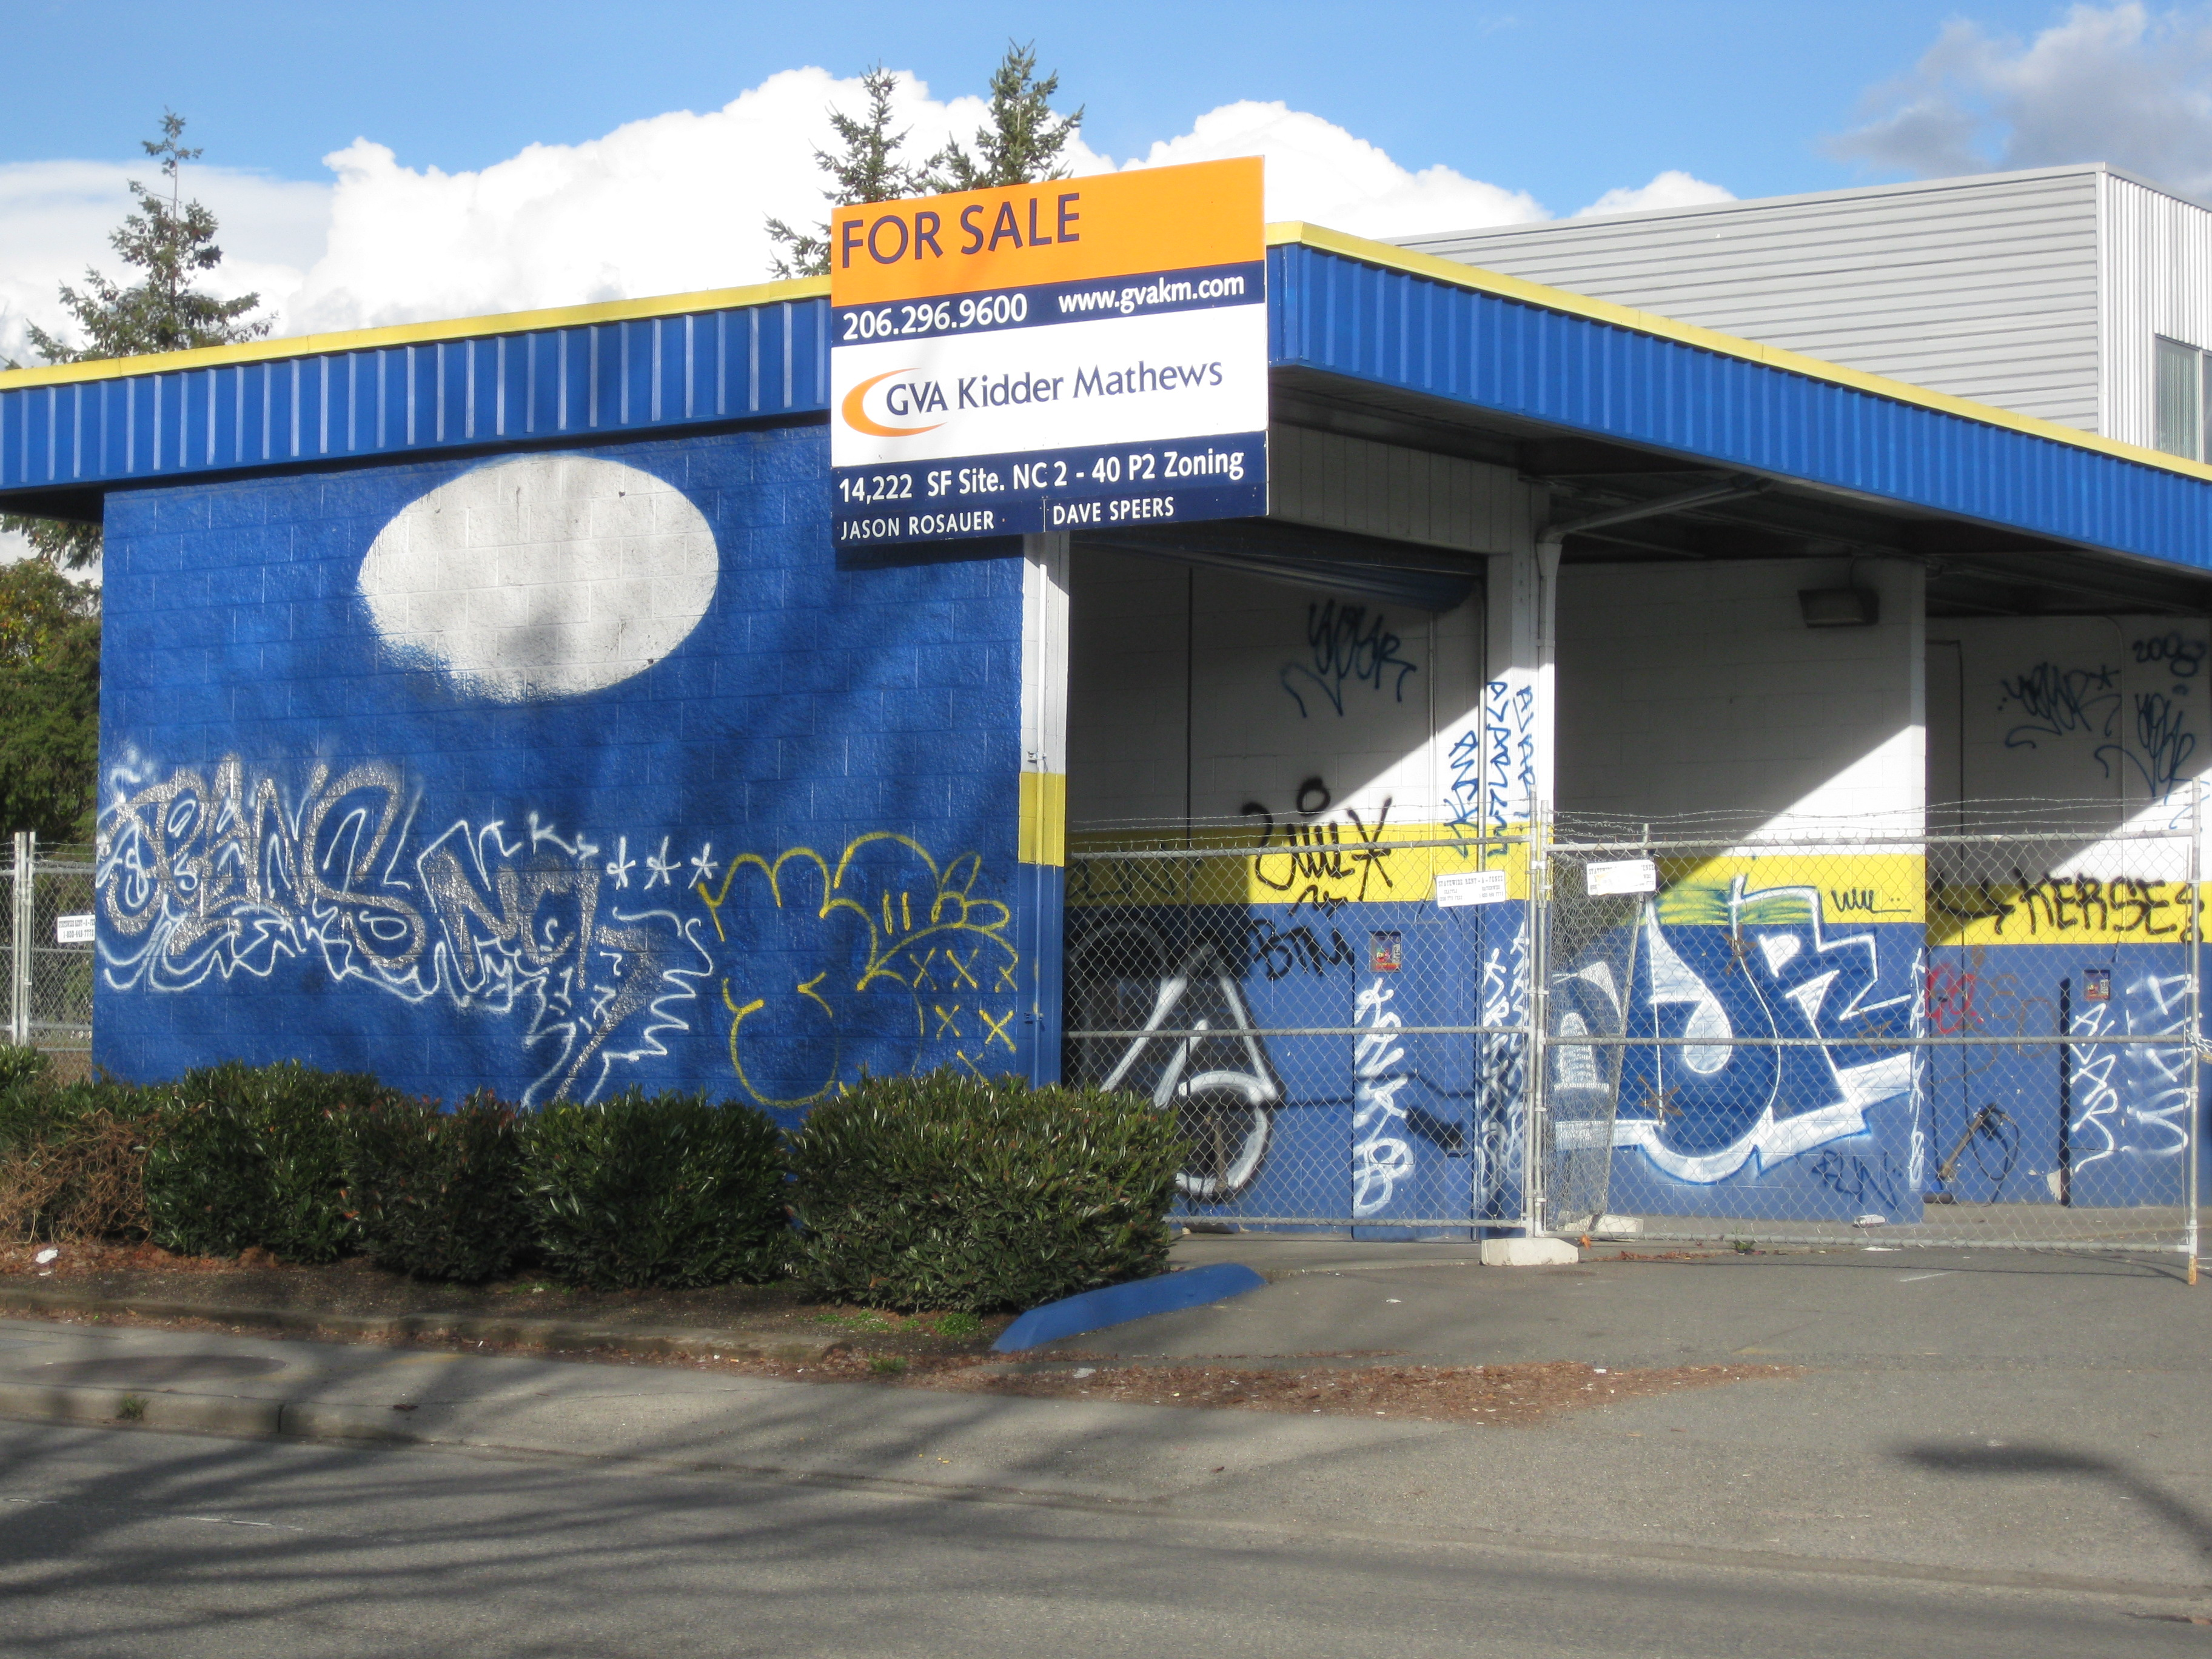 Car wash calamity central district news thats obviously the old chester dorsey self serve car wash sold at foreclosure last summer and has been a vacant eyesore ever since solutioingenieria Image collections